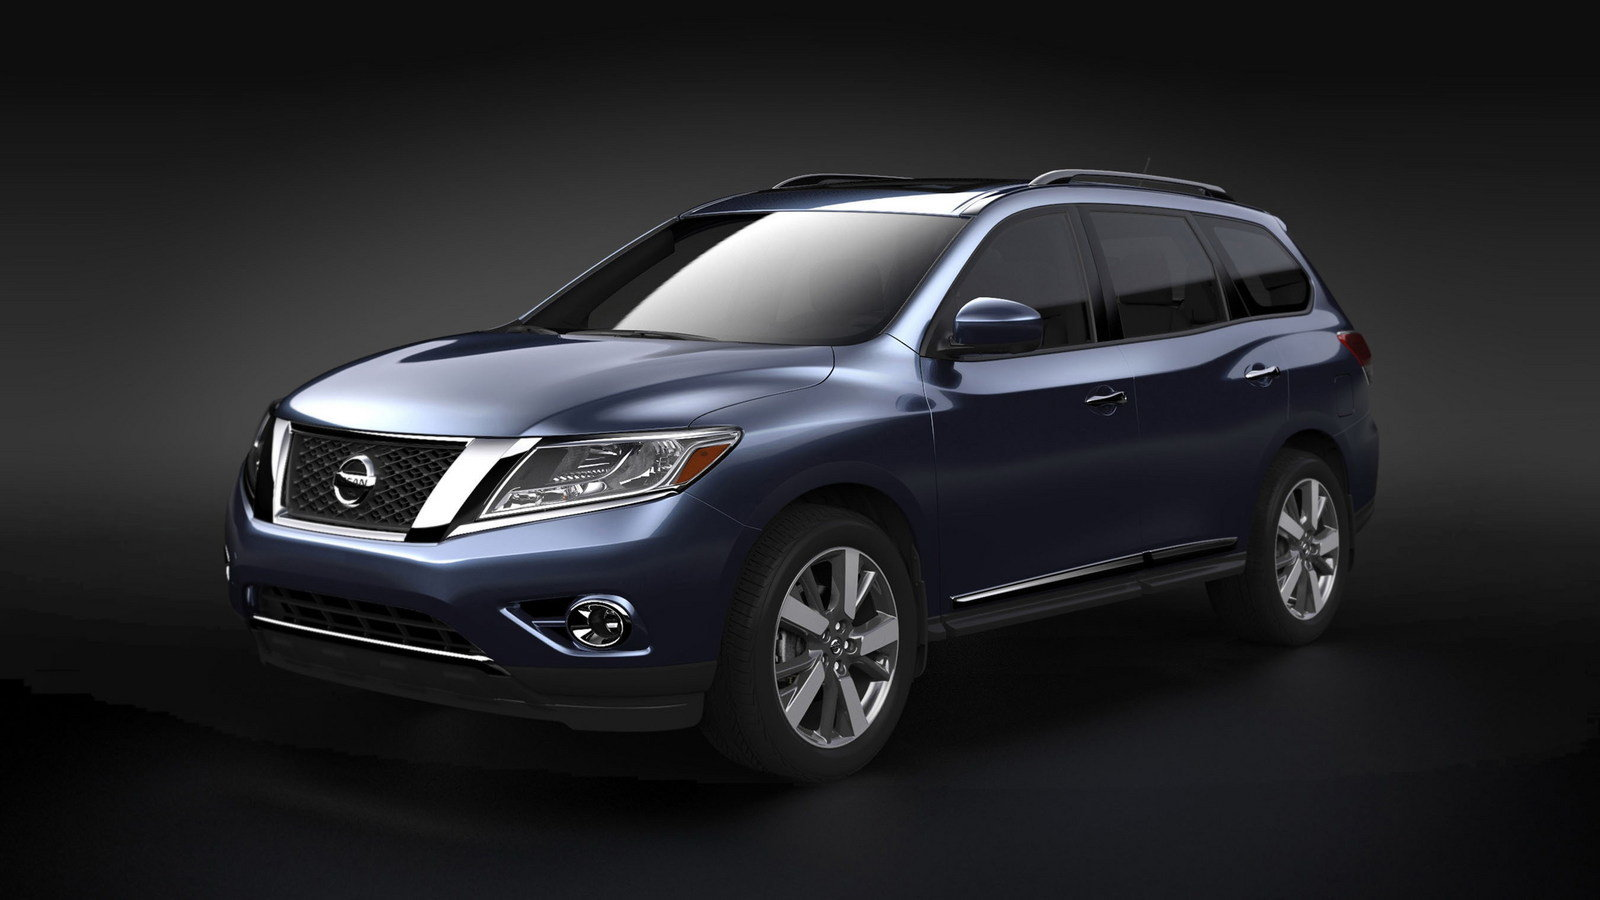 2012 nissan pathfinder concept review gallery top speed. Black Bedroom Furniture Sets. Home Design Ideas